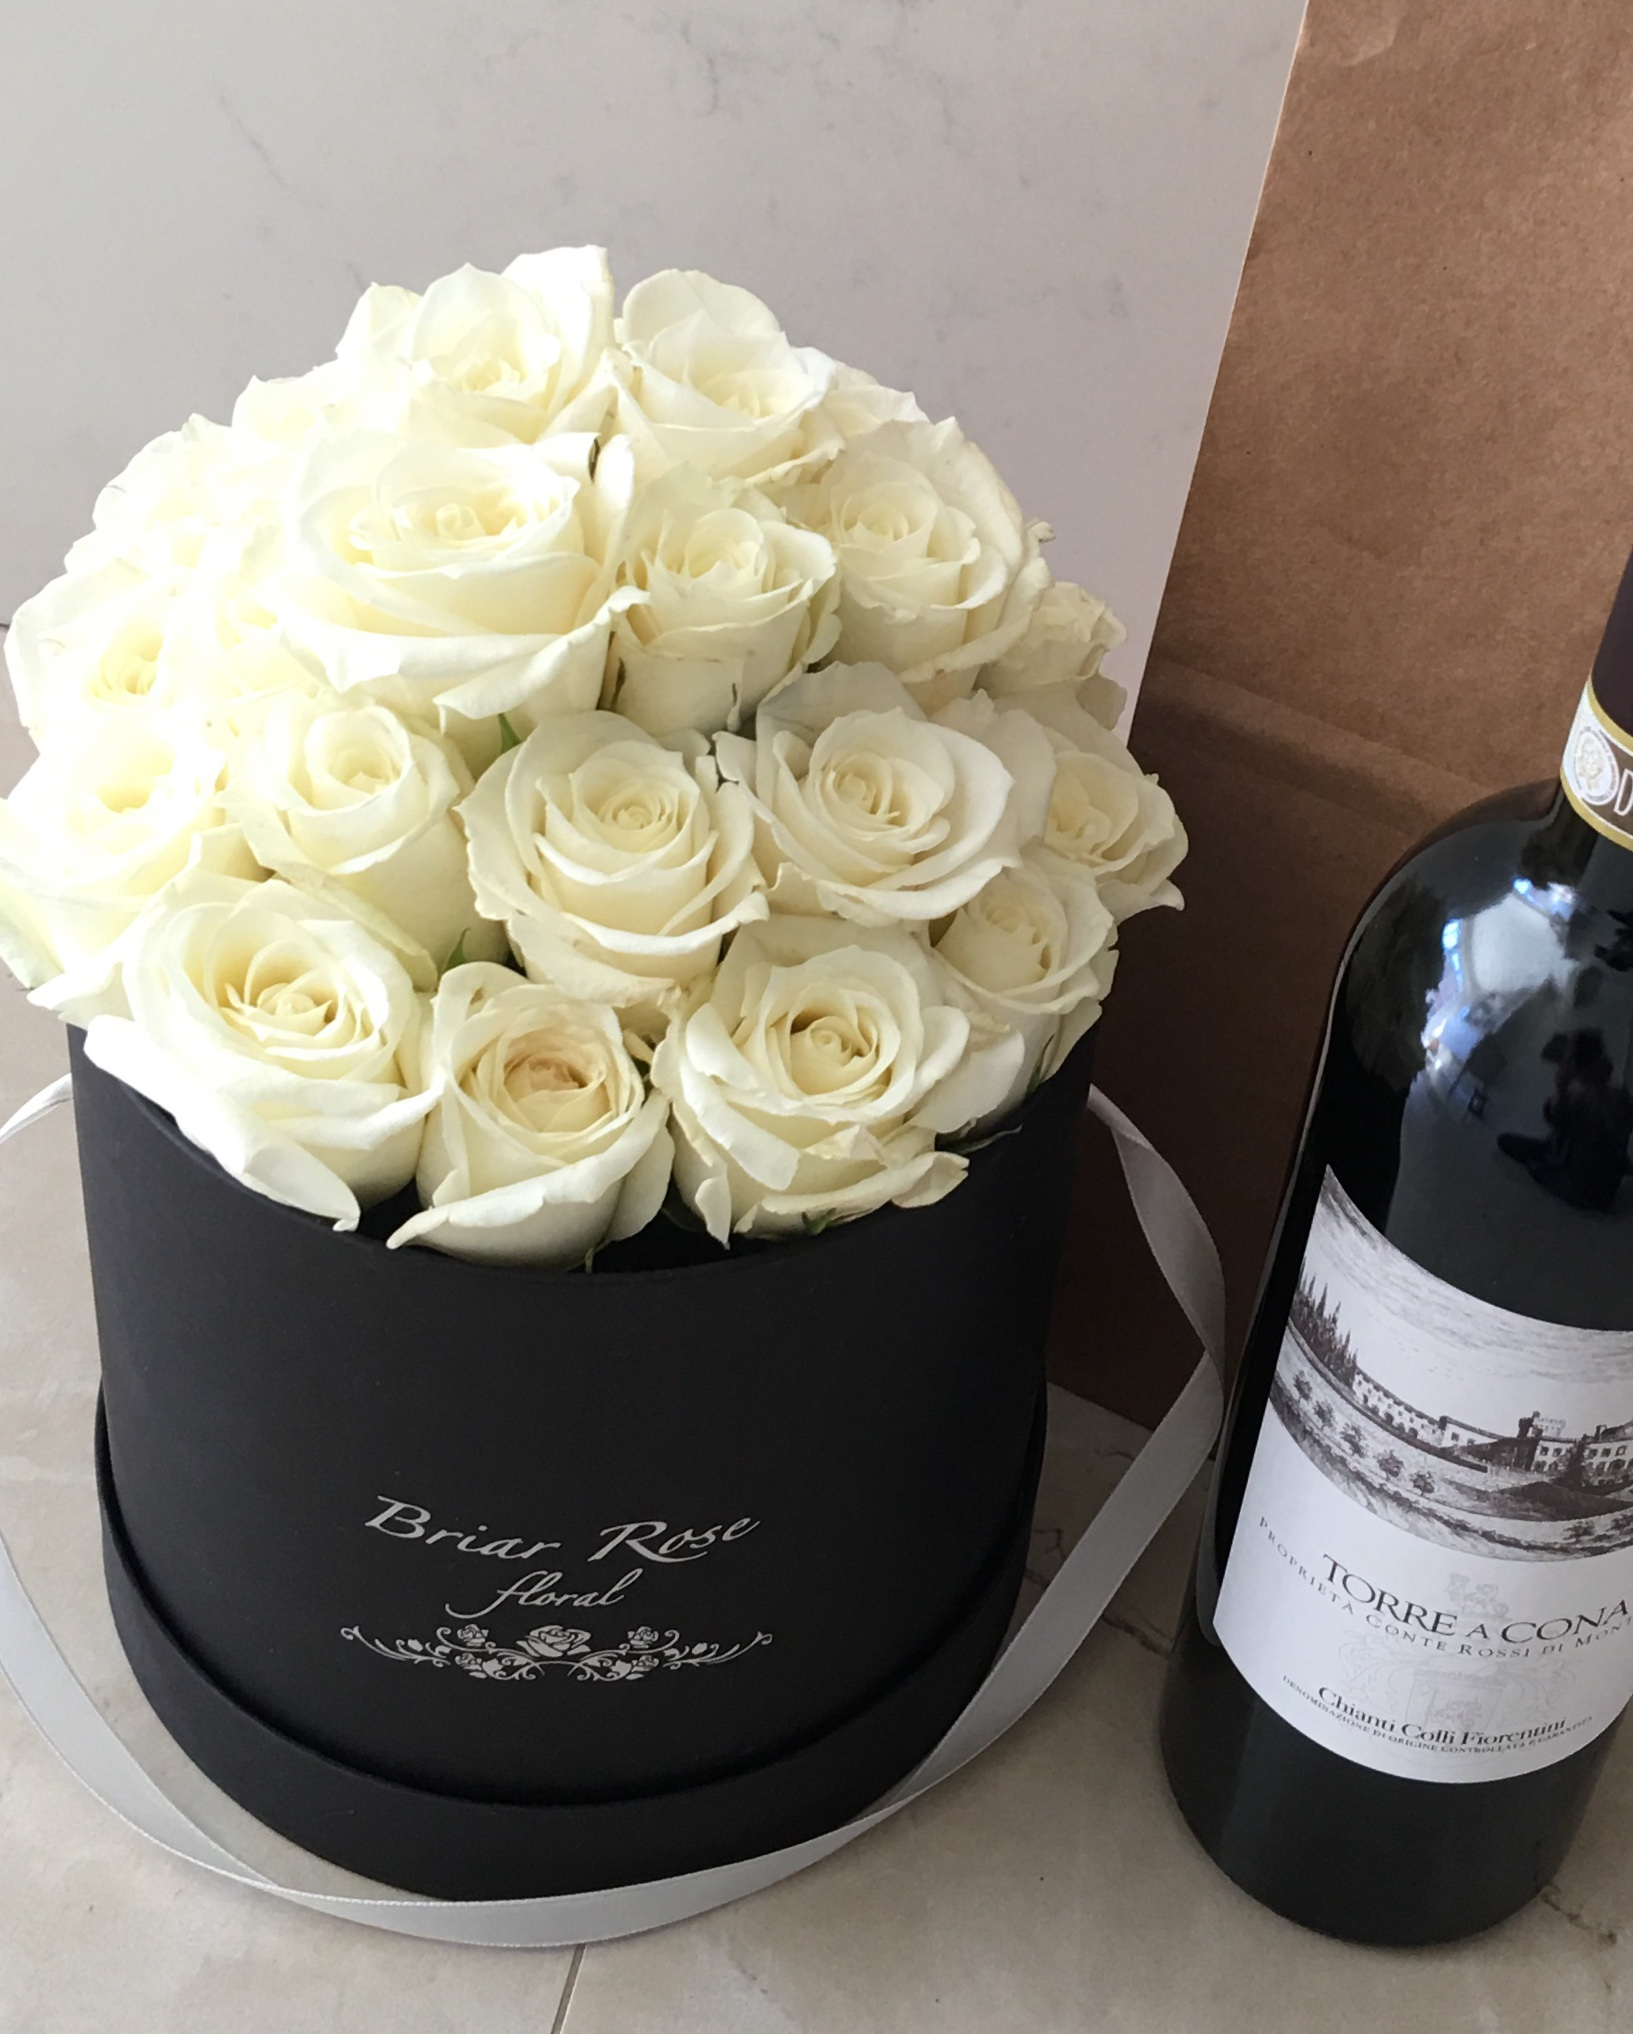 Signature floral box - Briar Rose floral box perfect for all occasion's